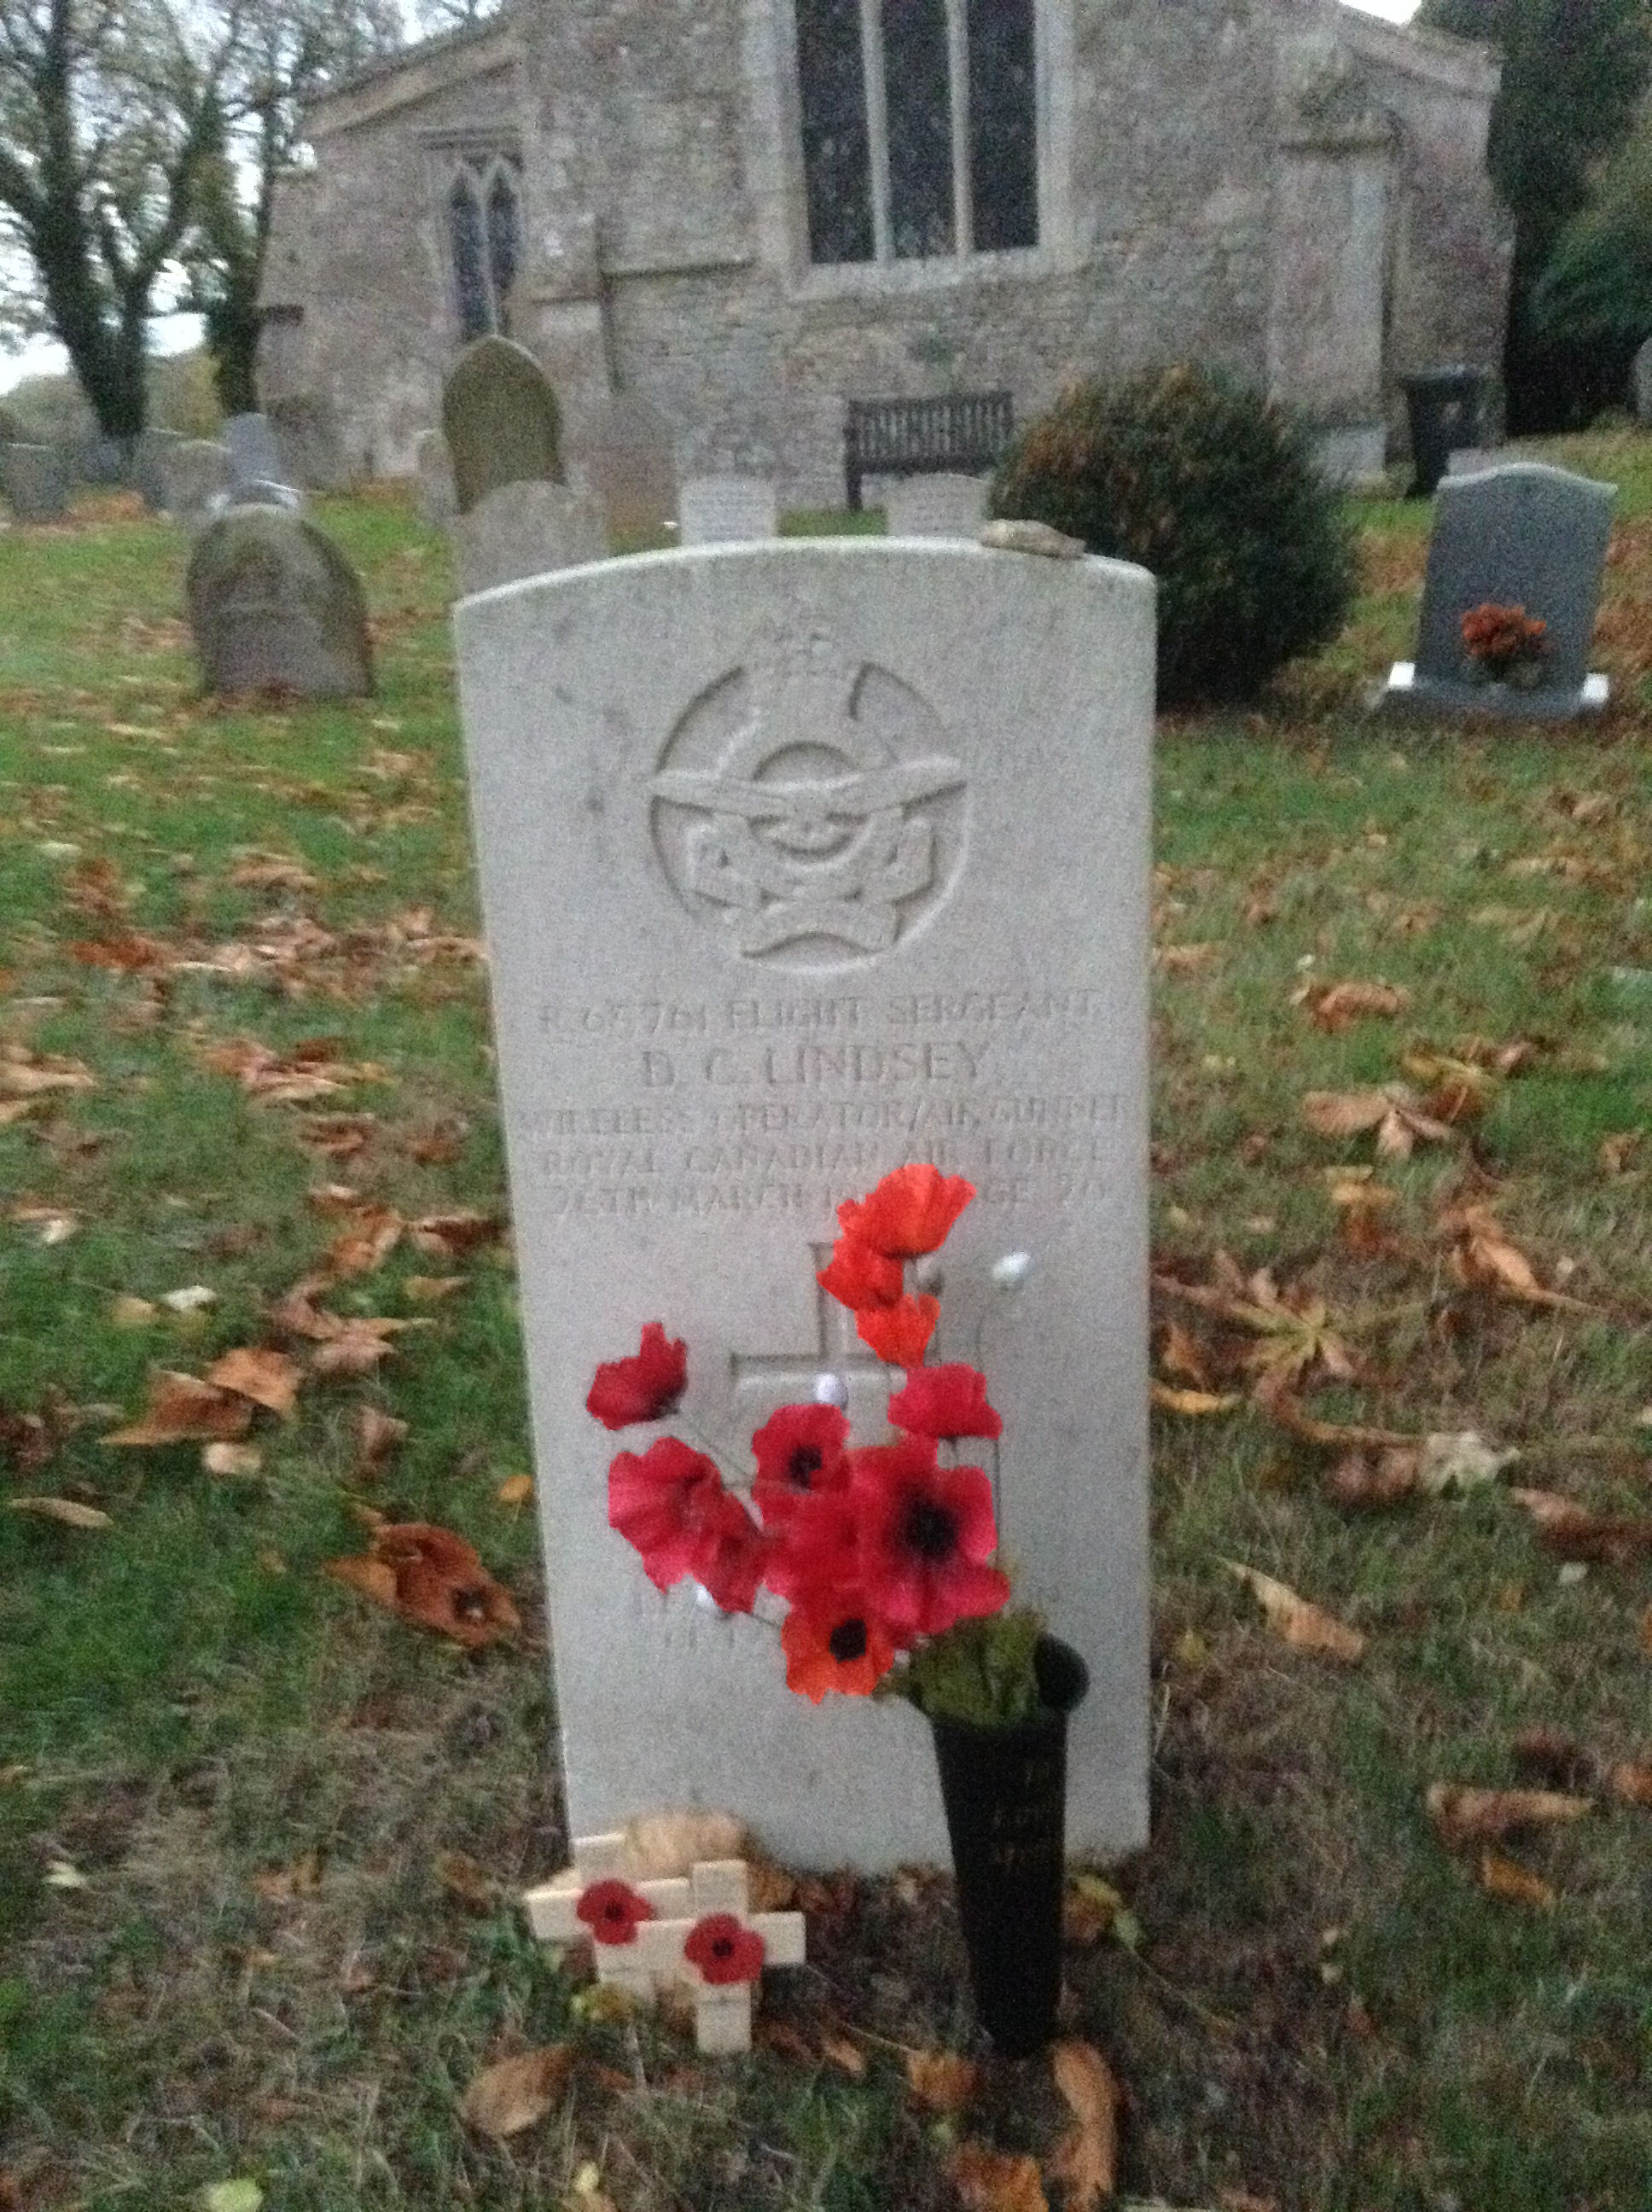 Grave Marker– Today we found this lovely little church with 4 graves of 4 Canadian airmen who all passed away March 26th 1942. Being Canadian ourselves it was a lovely 'accident ' to find this. Someone from the village or church had put lovely poppies and crosses at the graves!